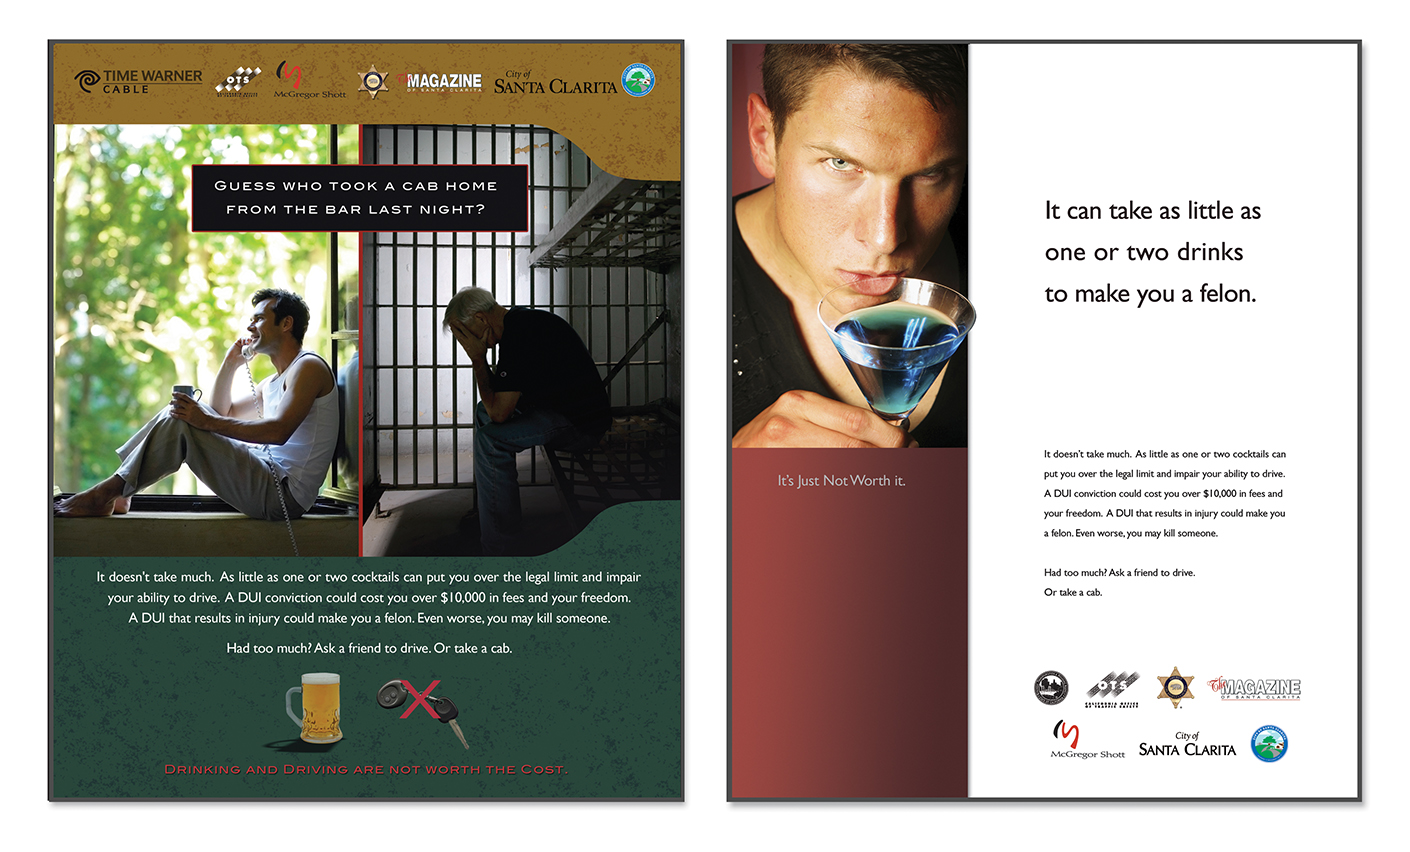 Award-winning DUI Prevention Campaign